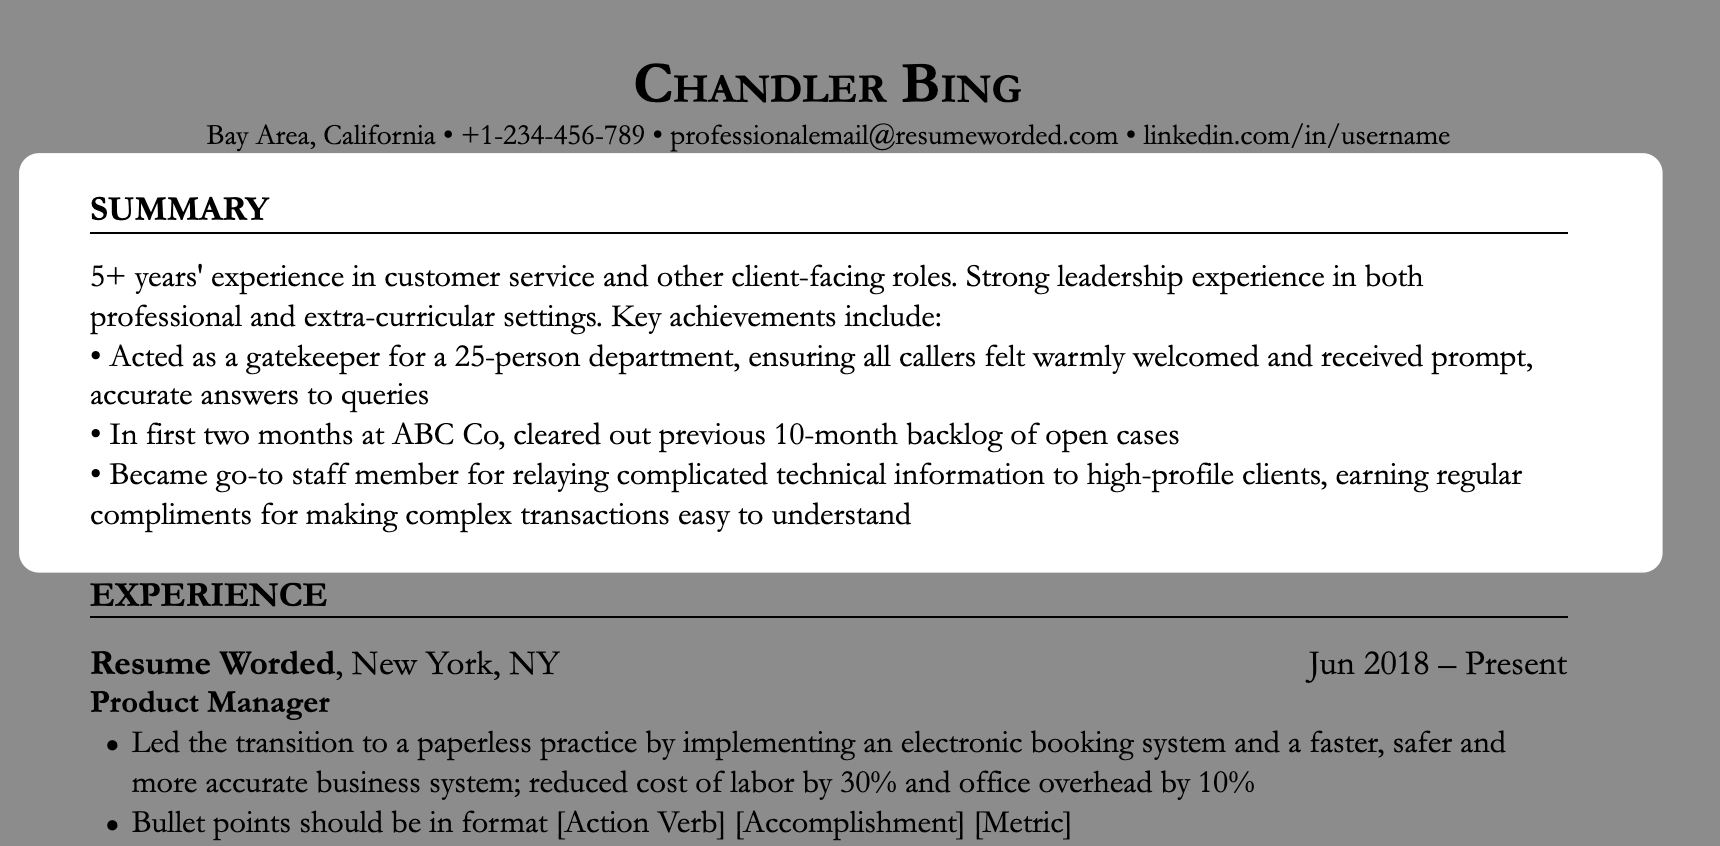 Resume summary example of mid-level customer service employee, highlighting strong accomplishments